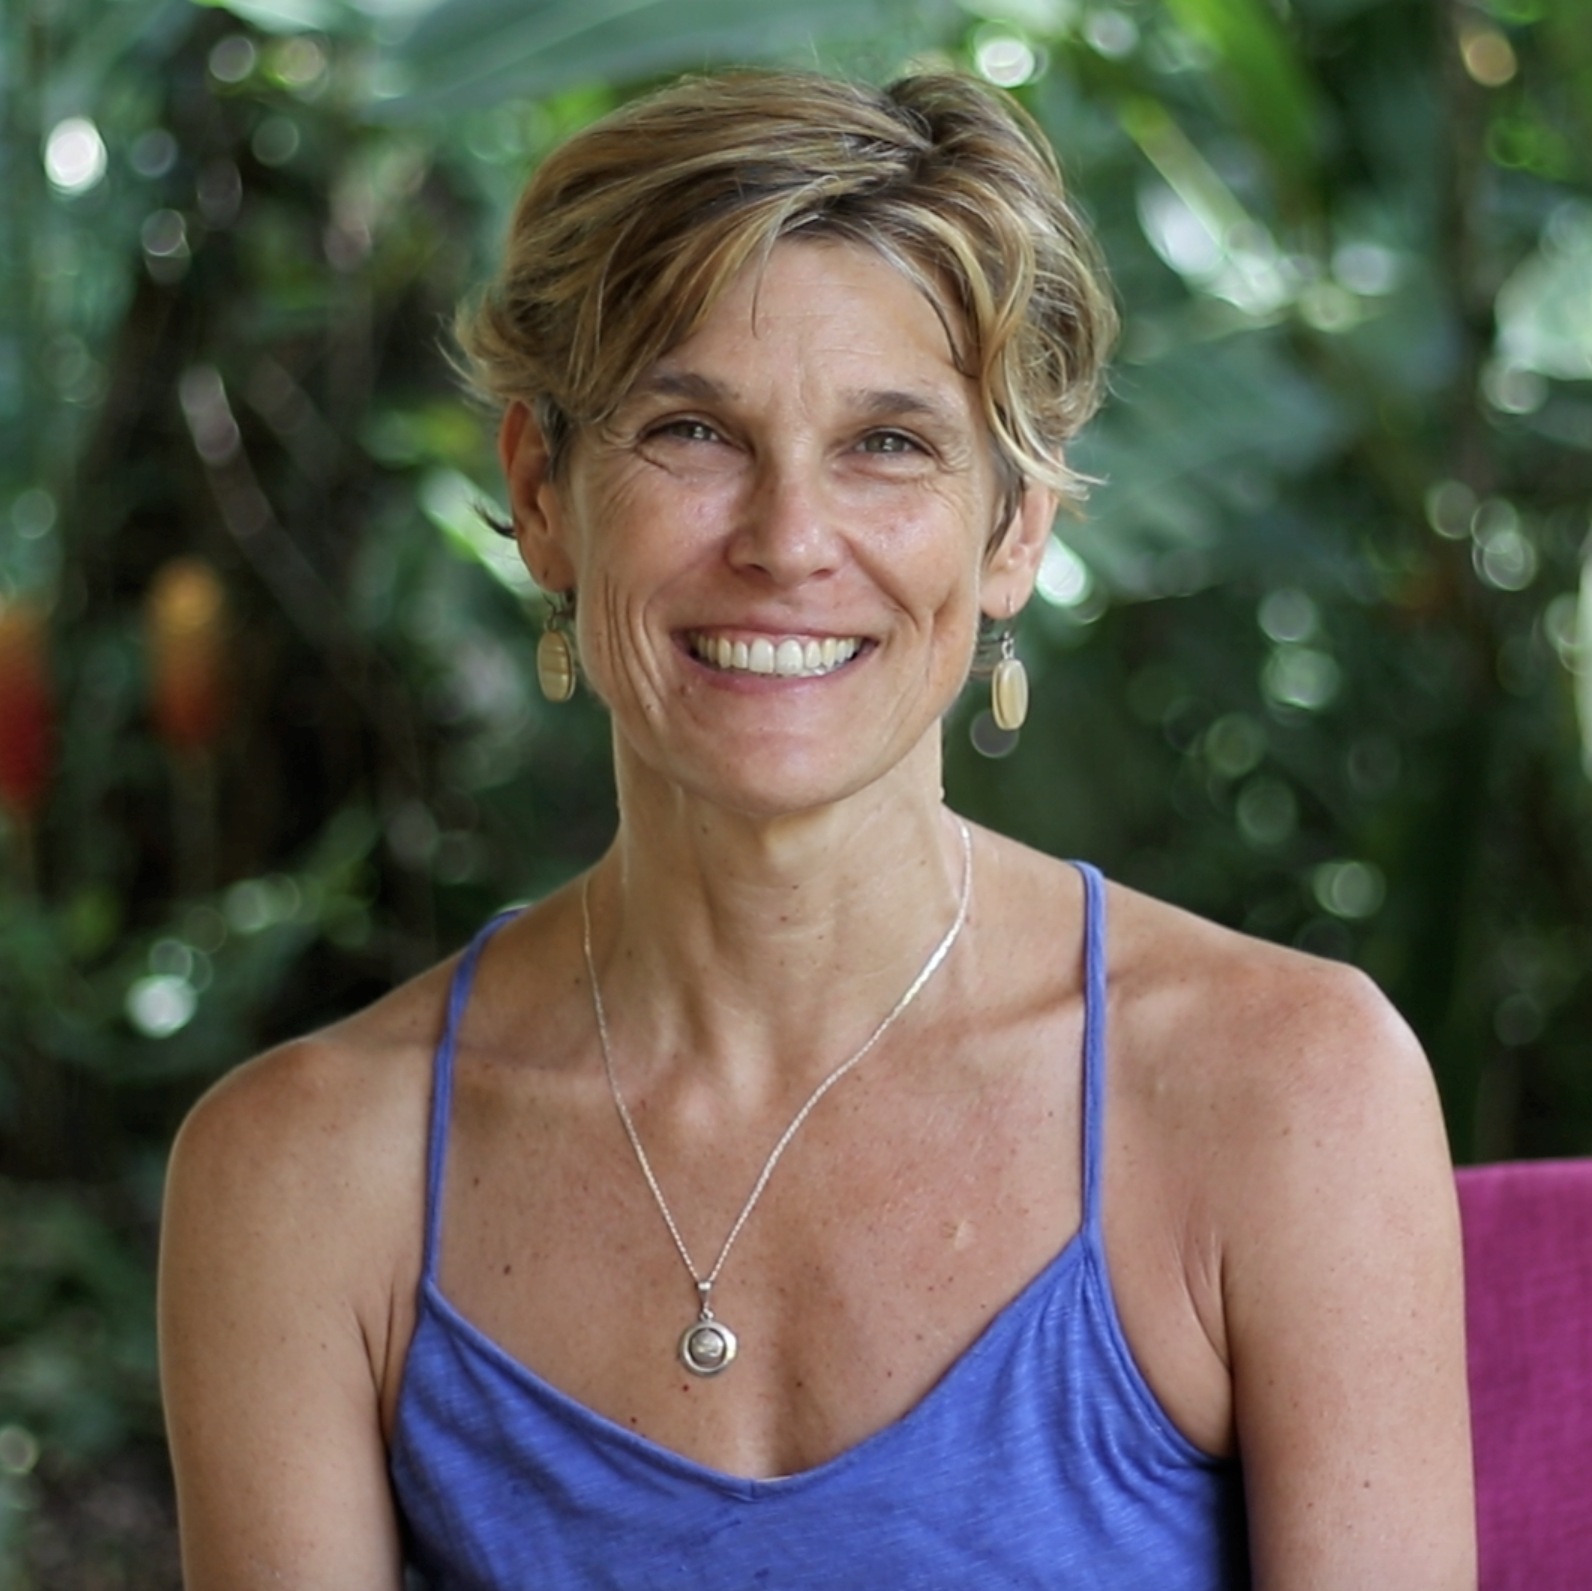 Meg Williams, Founder of Modalities that Heal